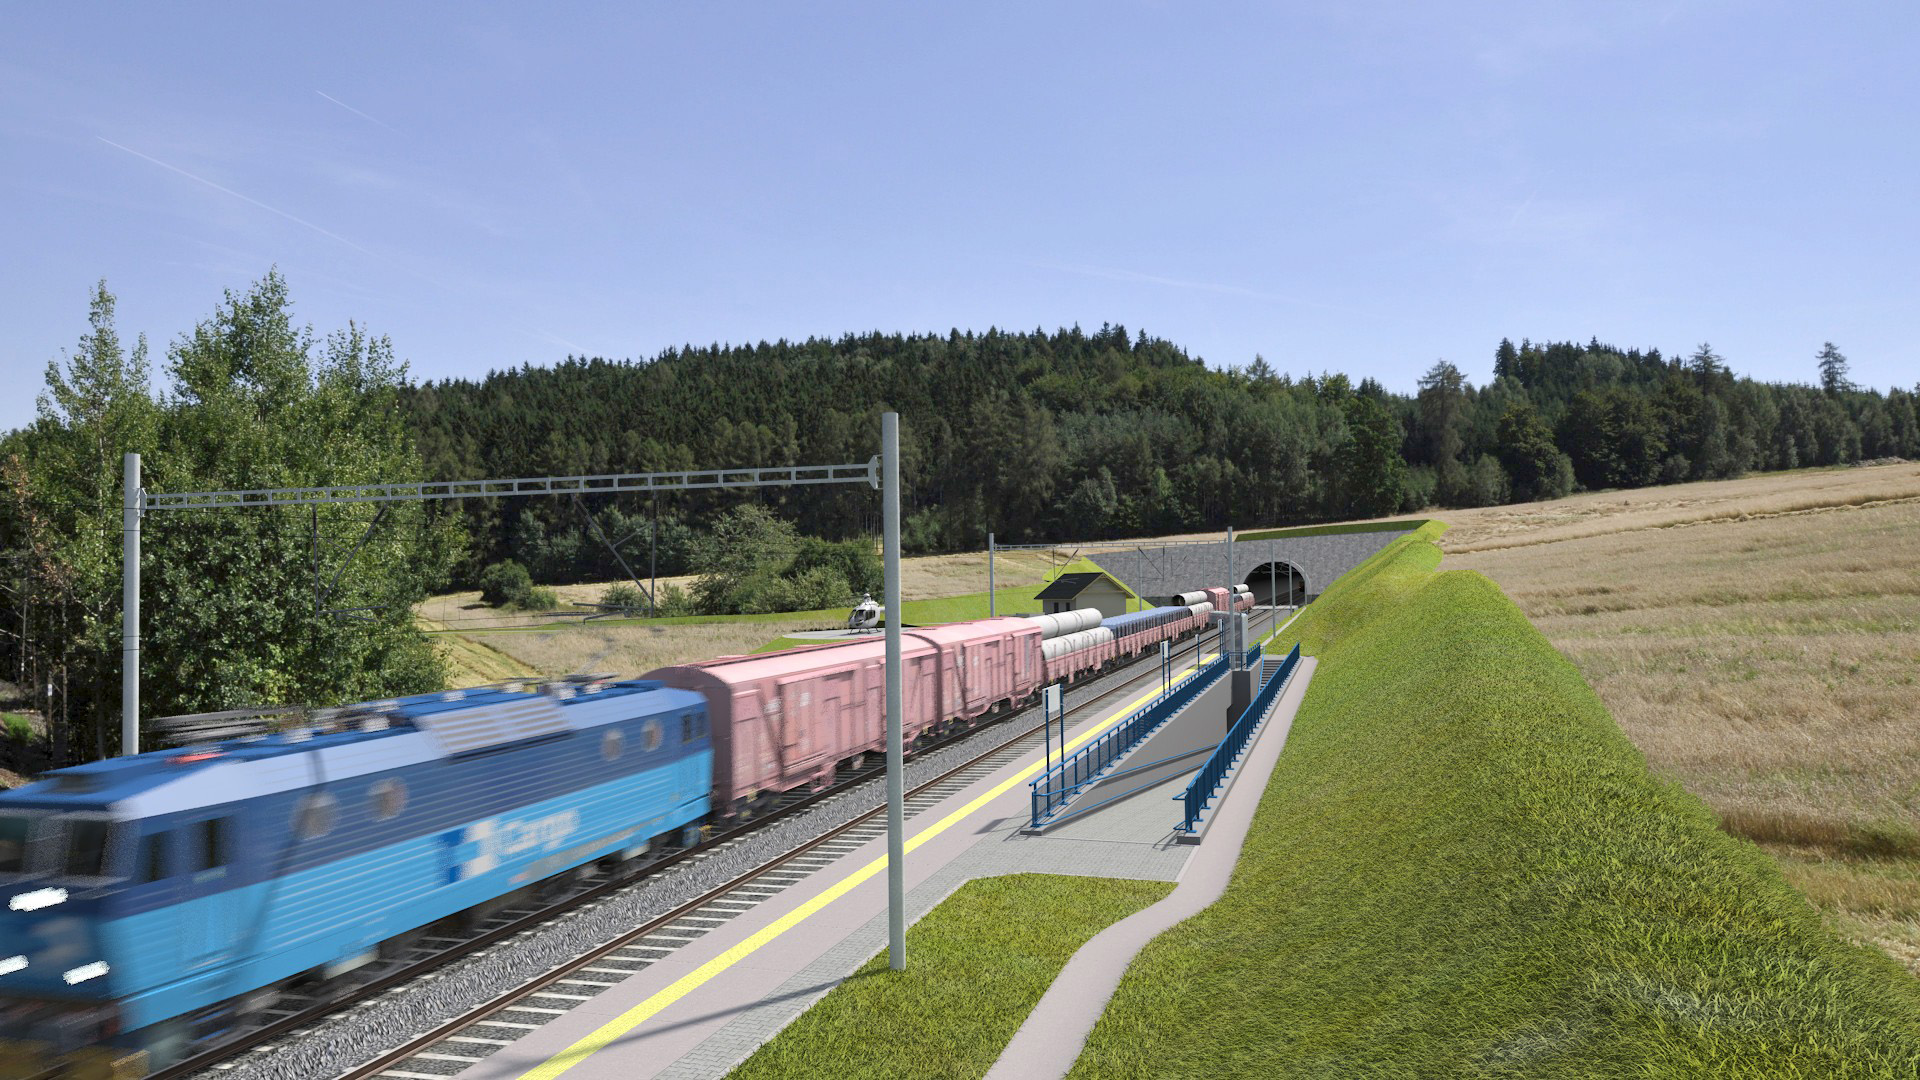 The train trip from Prague to Tábor will not take only one hour